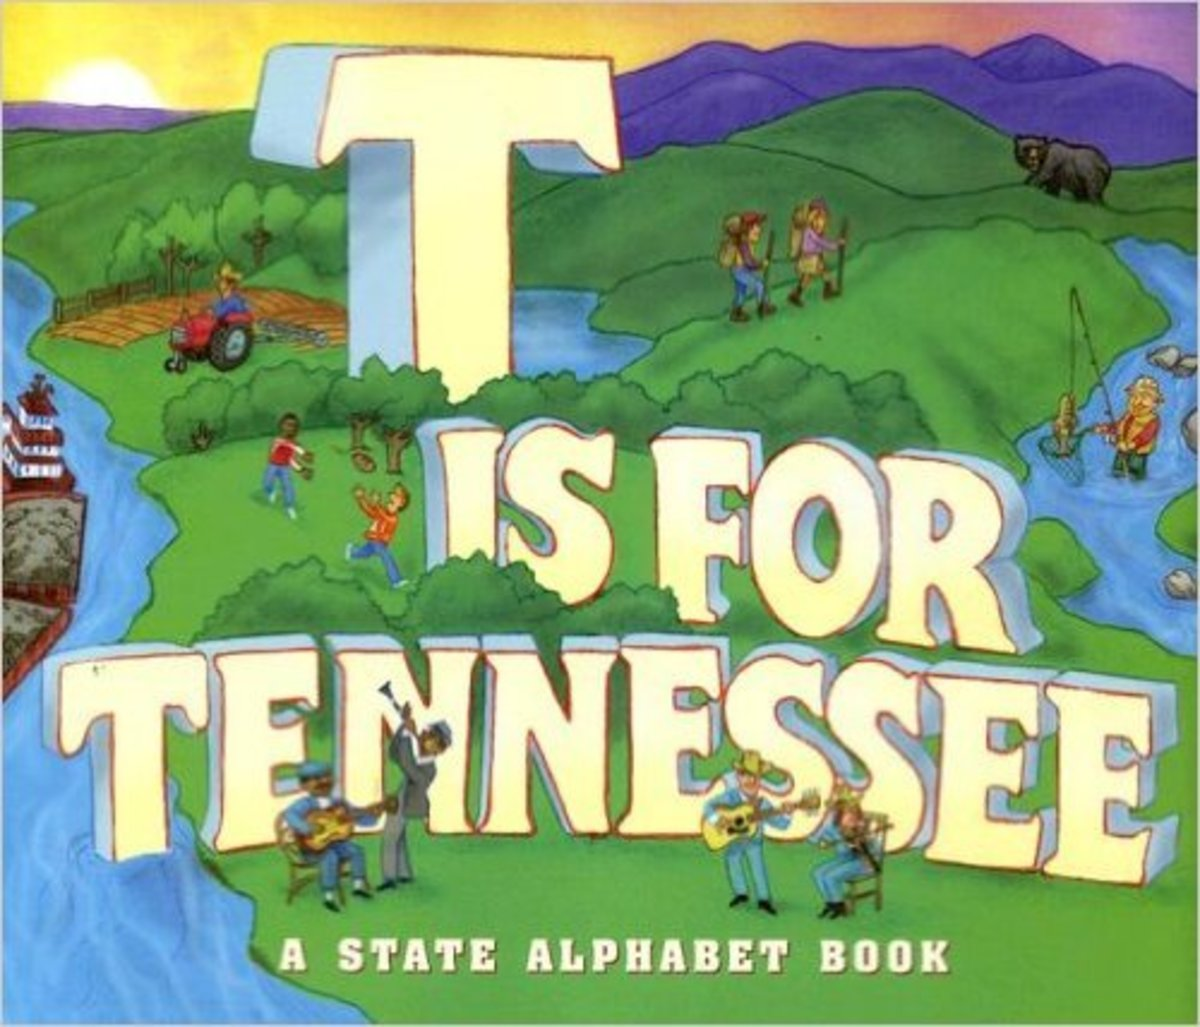 T Is for Tennessee (State Alphabet Books) by E. J. Sullivan